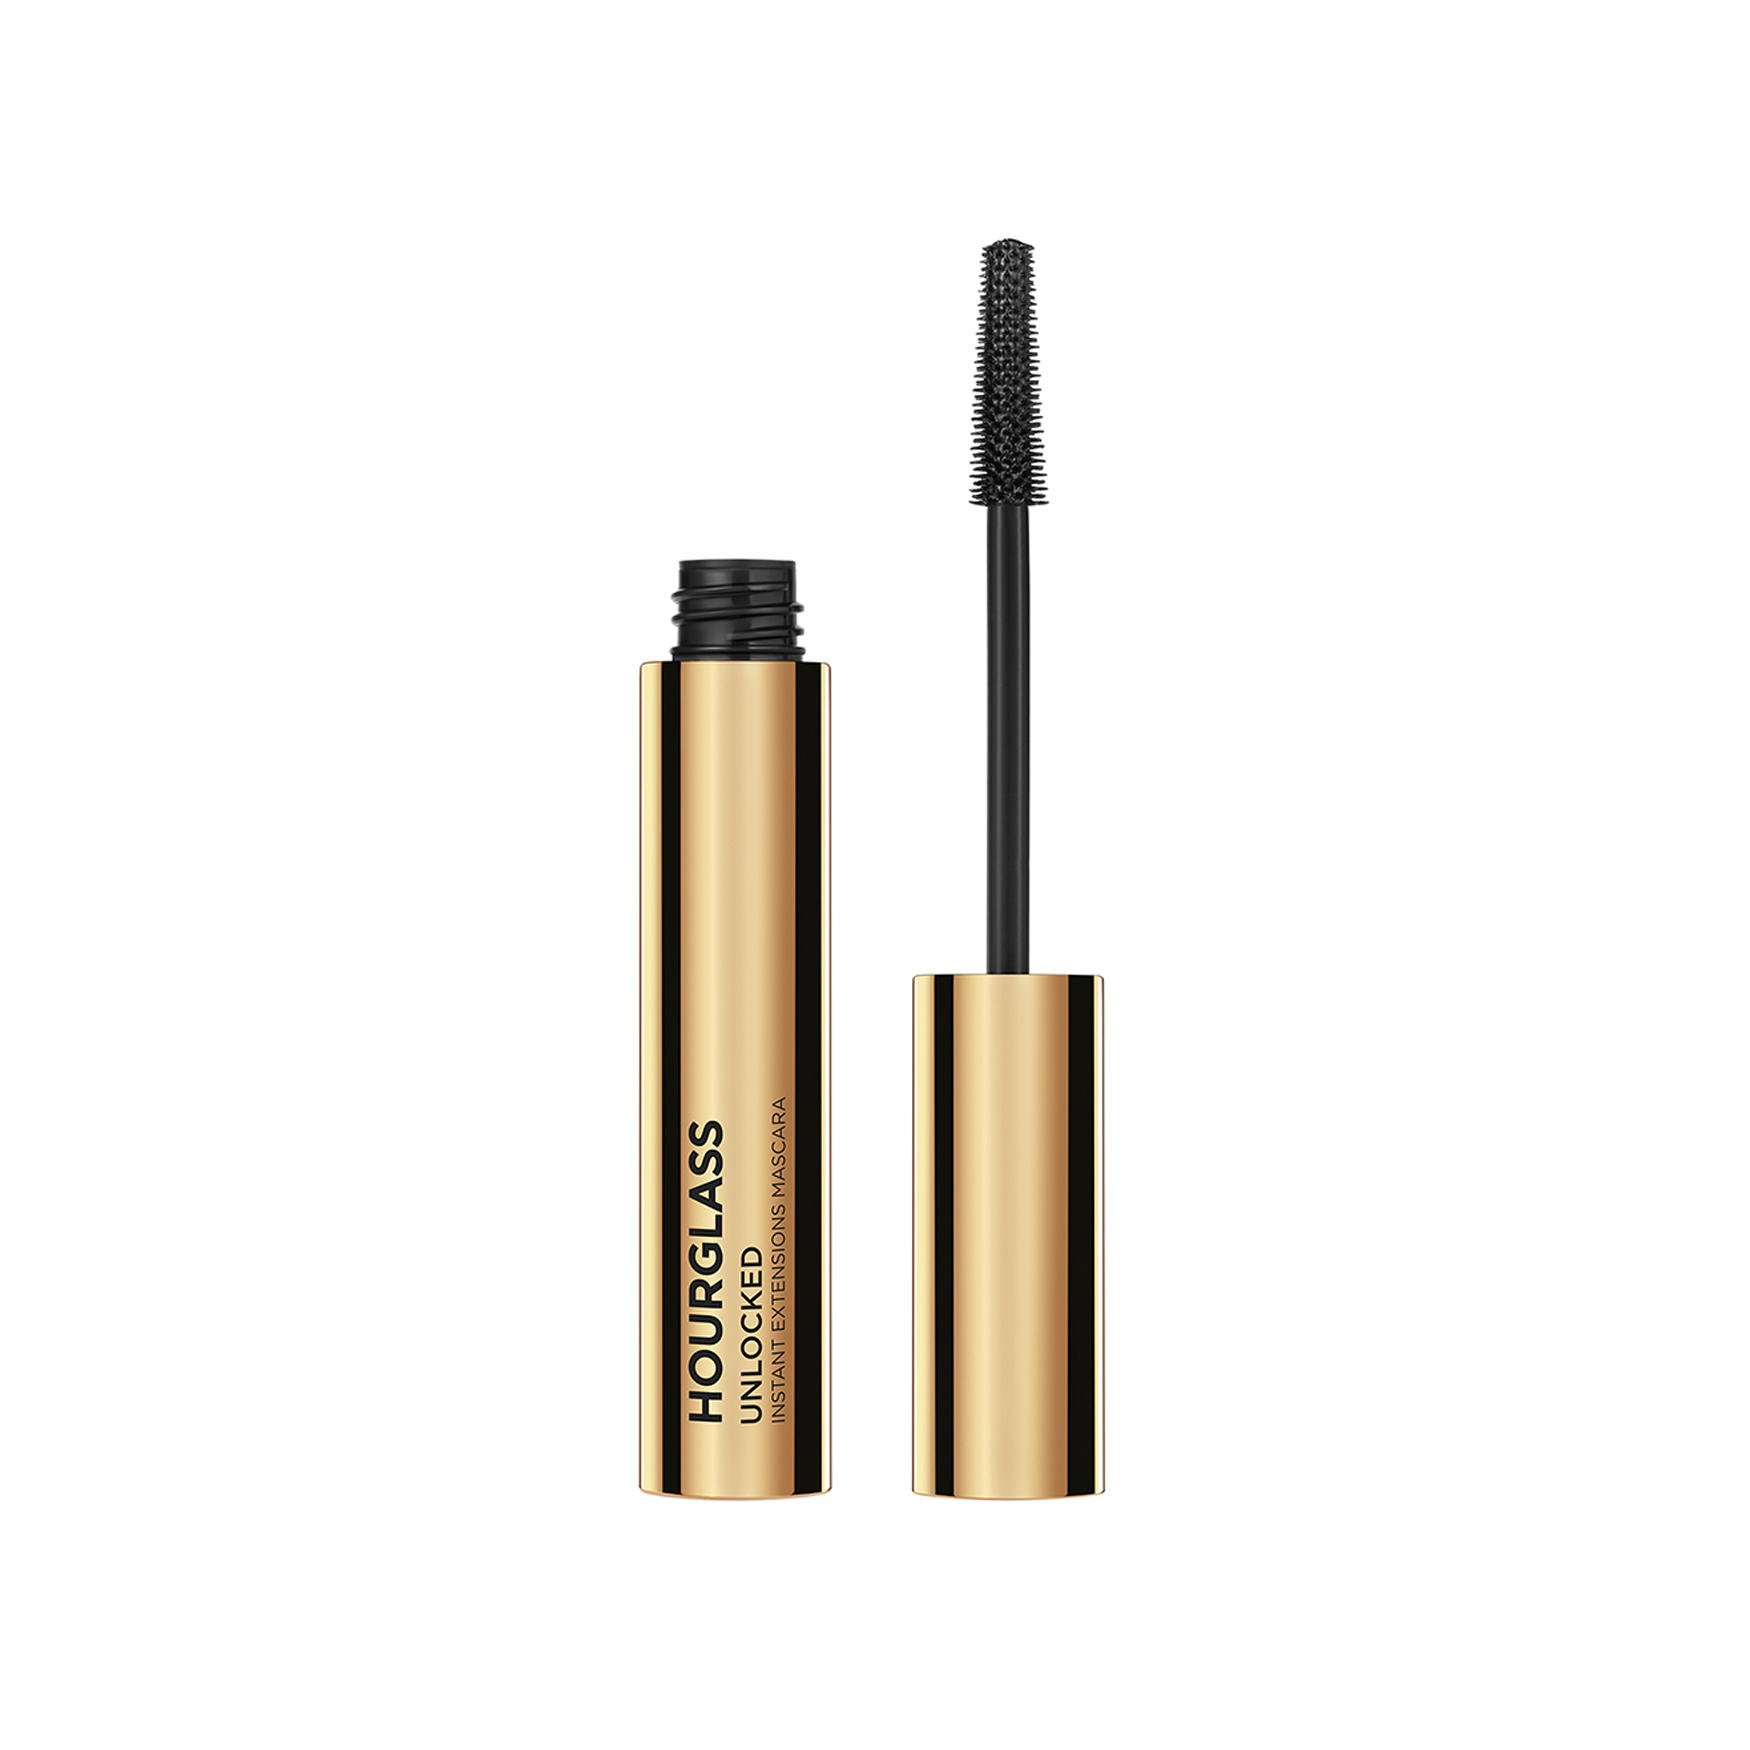 Unlocked Instant Extensions Mascara, , large